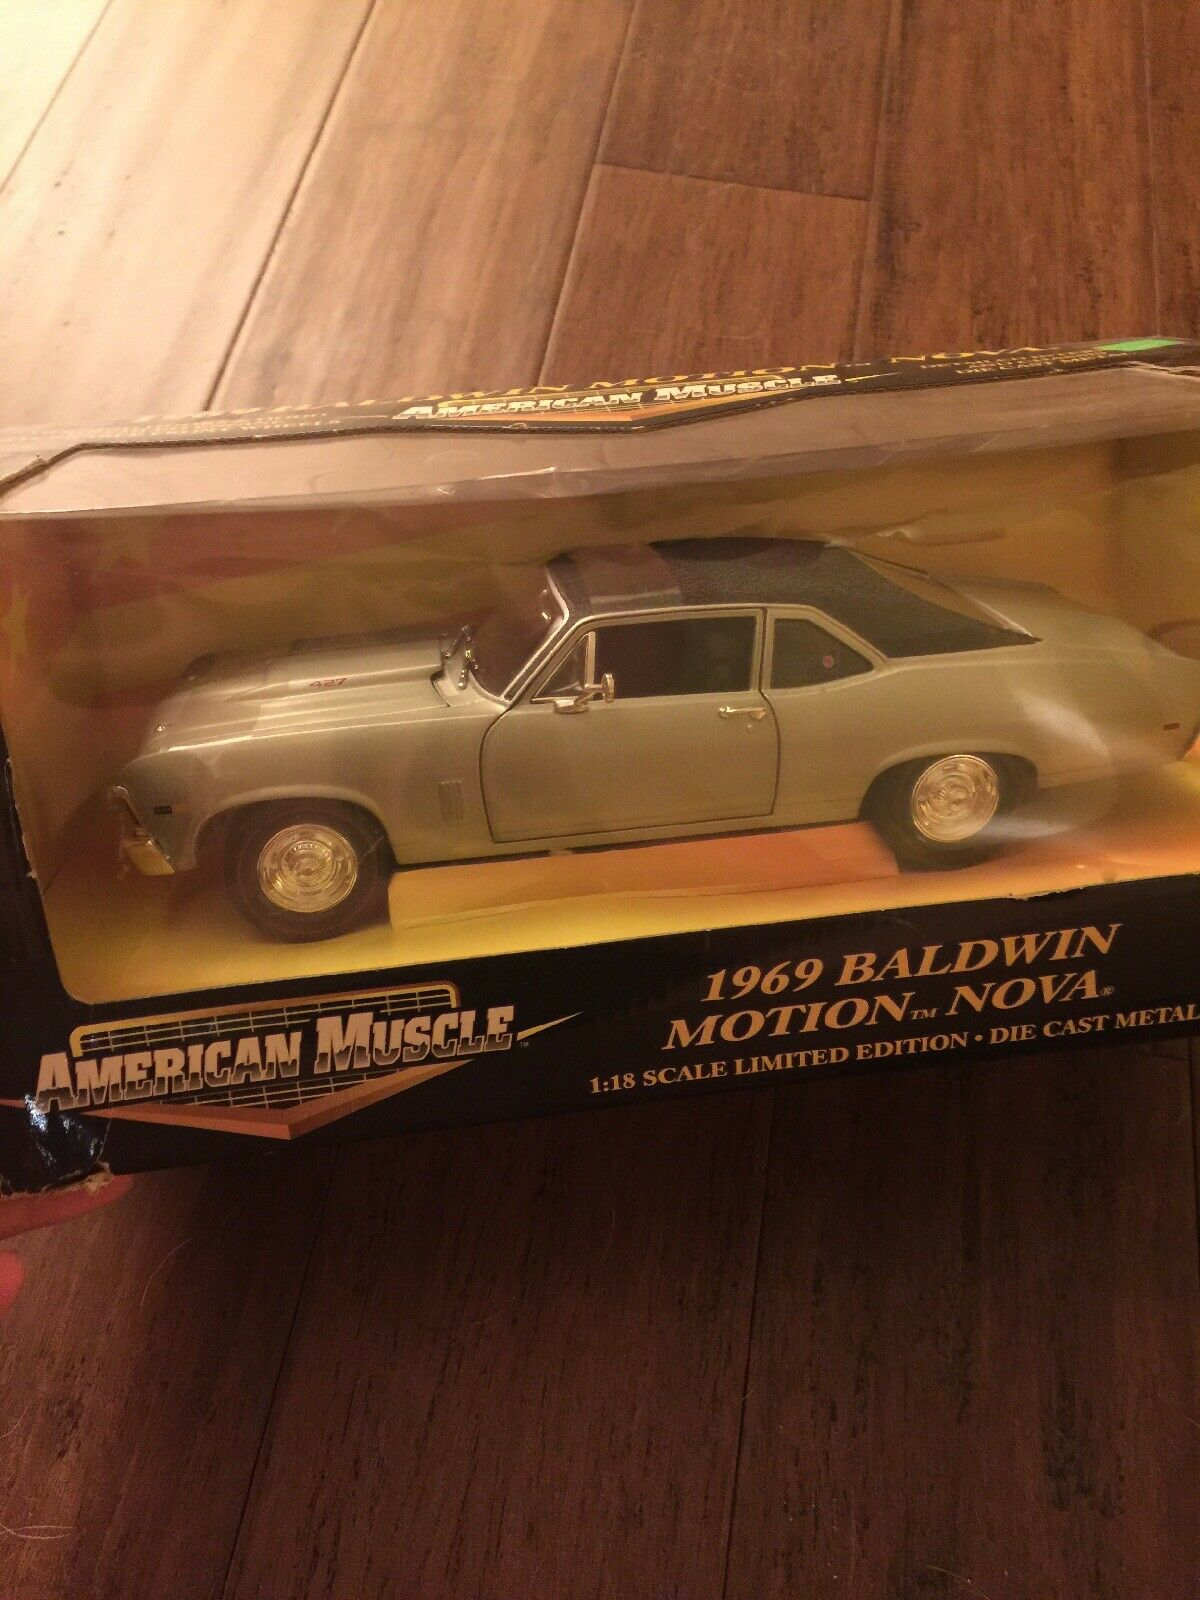 American Muscle 1969 Chevy Baldwin Motion Nova 1 18 Scale Limited Edition